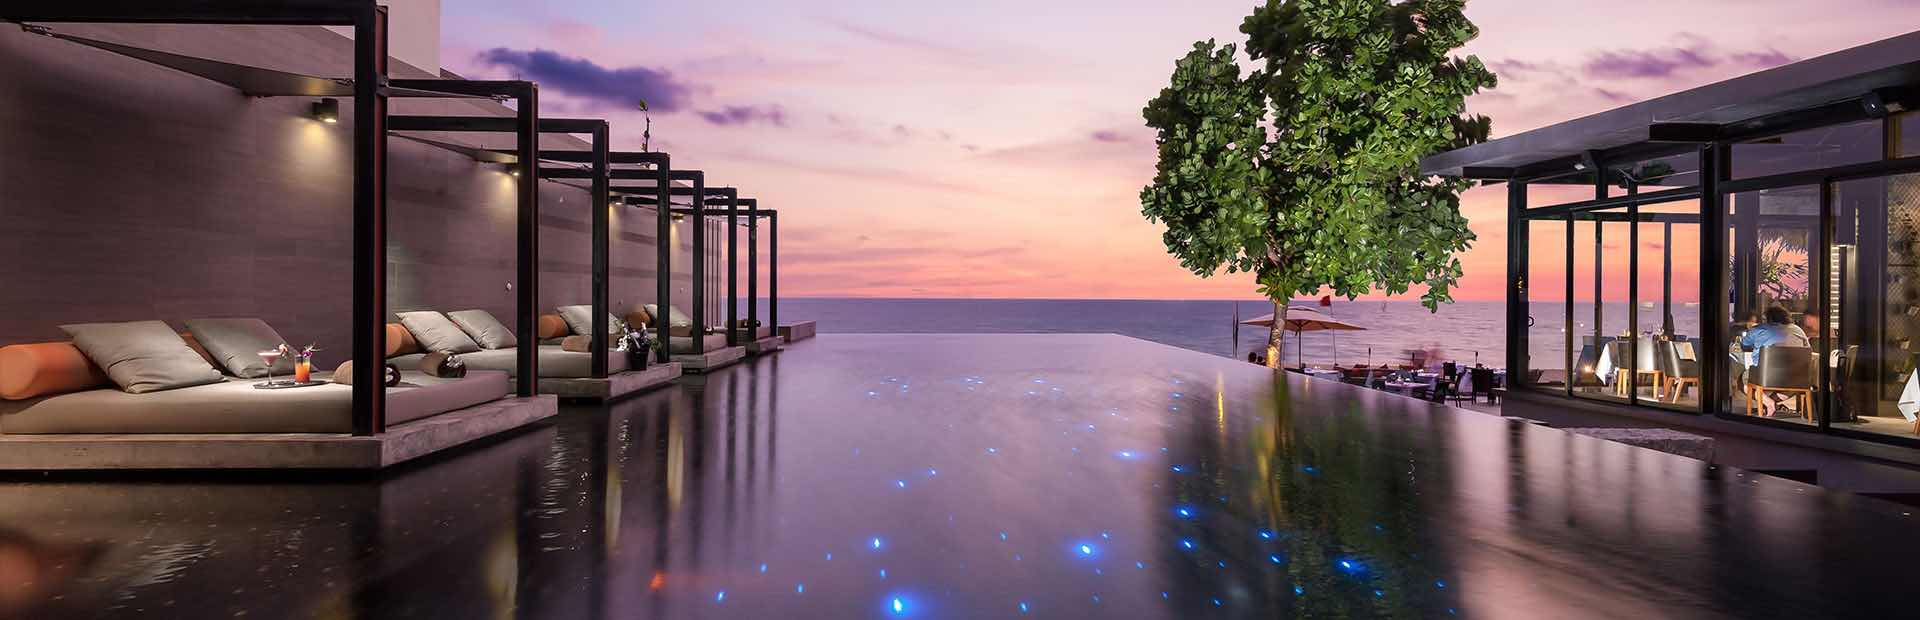 Boutique Luxury Beach Resorts in Thailand - Aleenta Hua Hin Resort & Spa